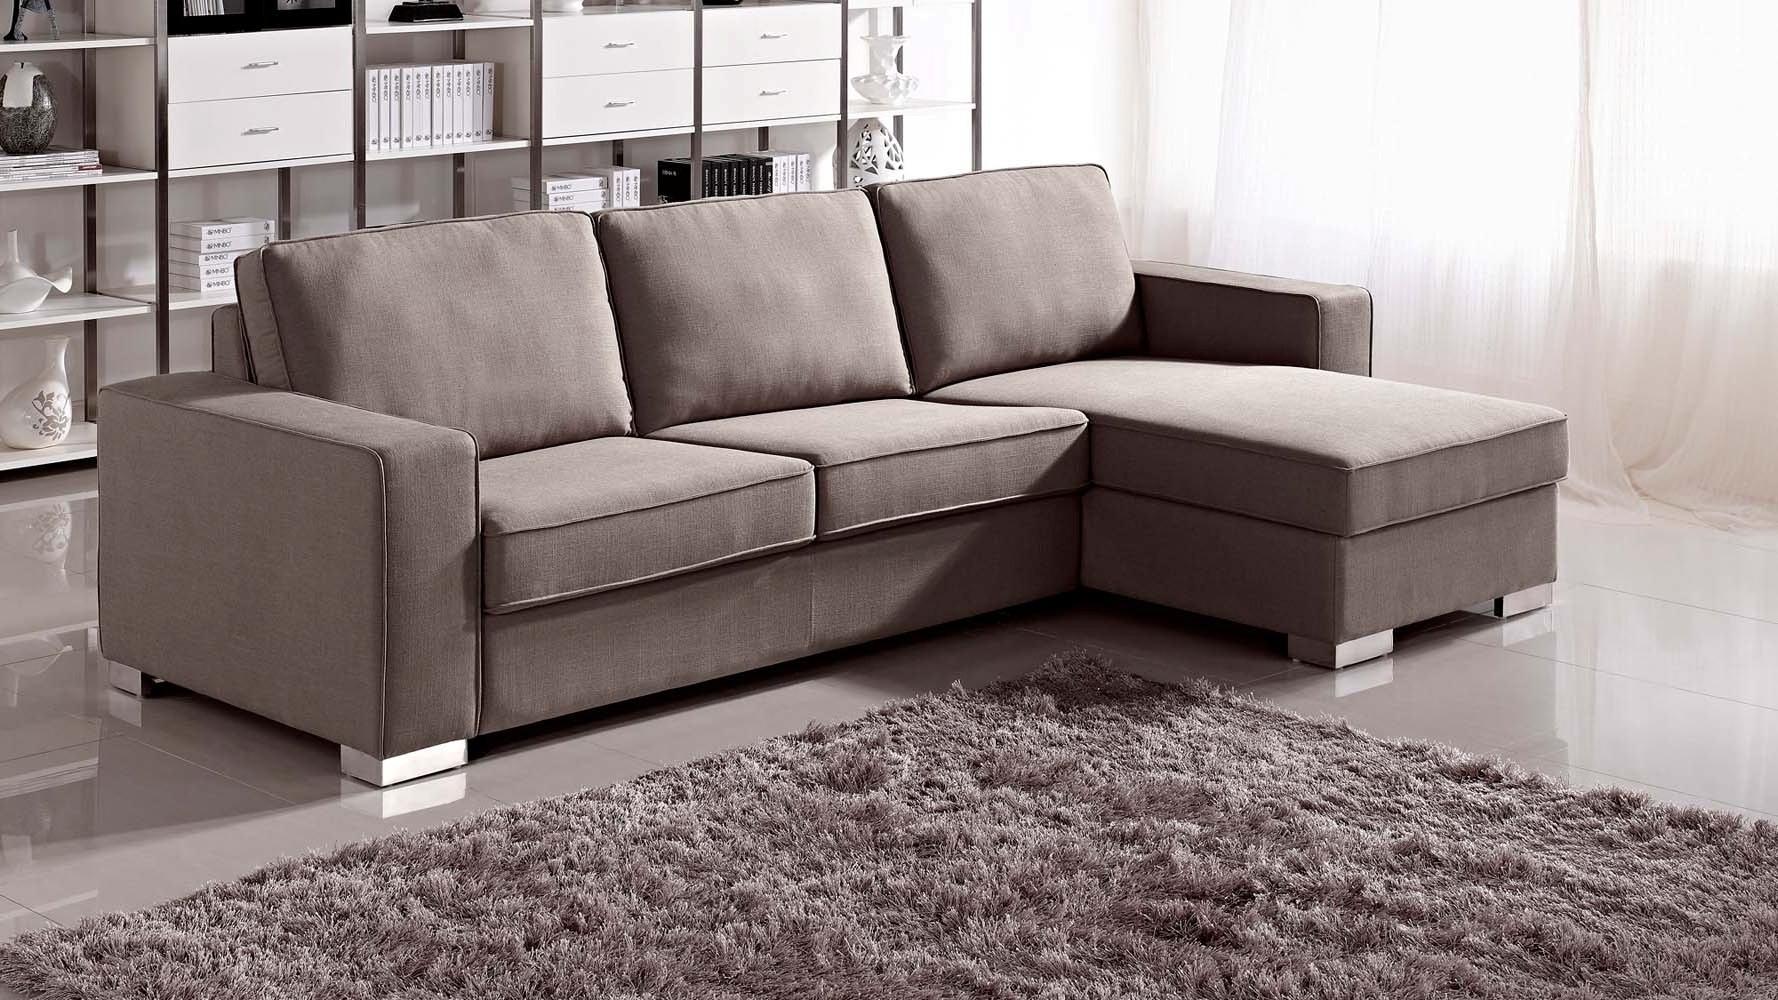 2019 Sleeper Sectional Sofas Inside Innovative Sofa Sleeper Sectionals Beautiful Interior Design Style (View 11 of 20)